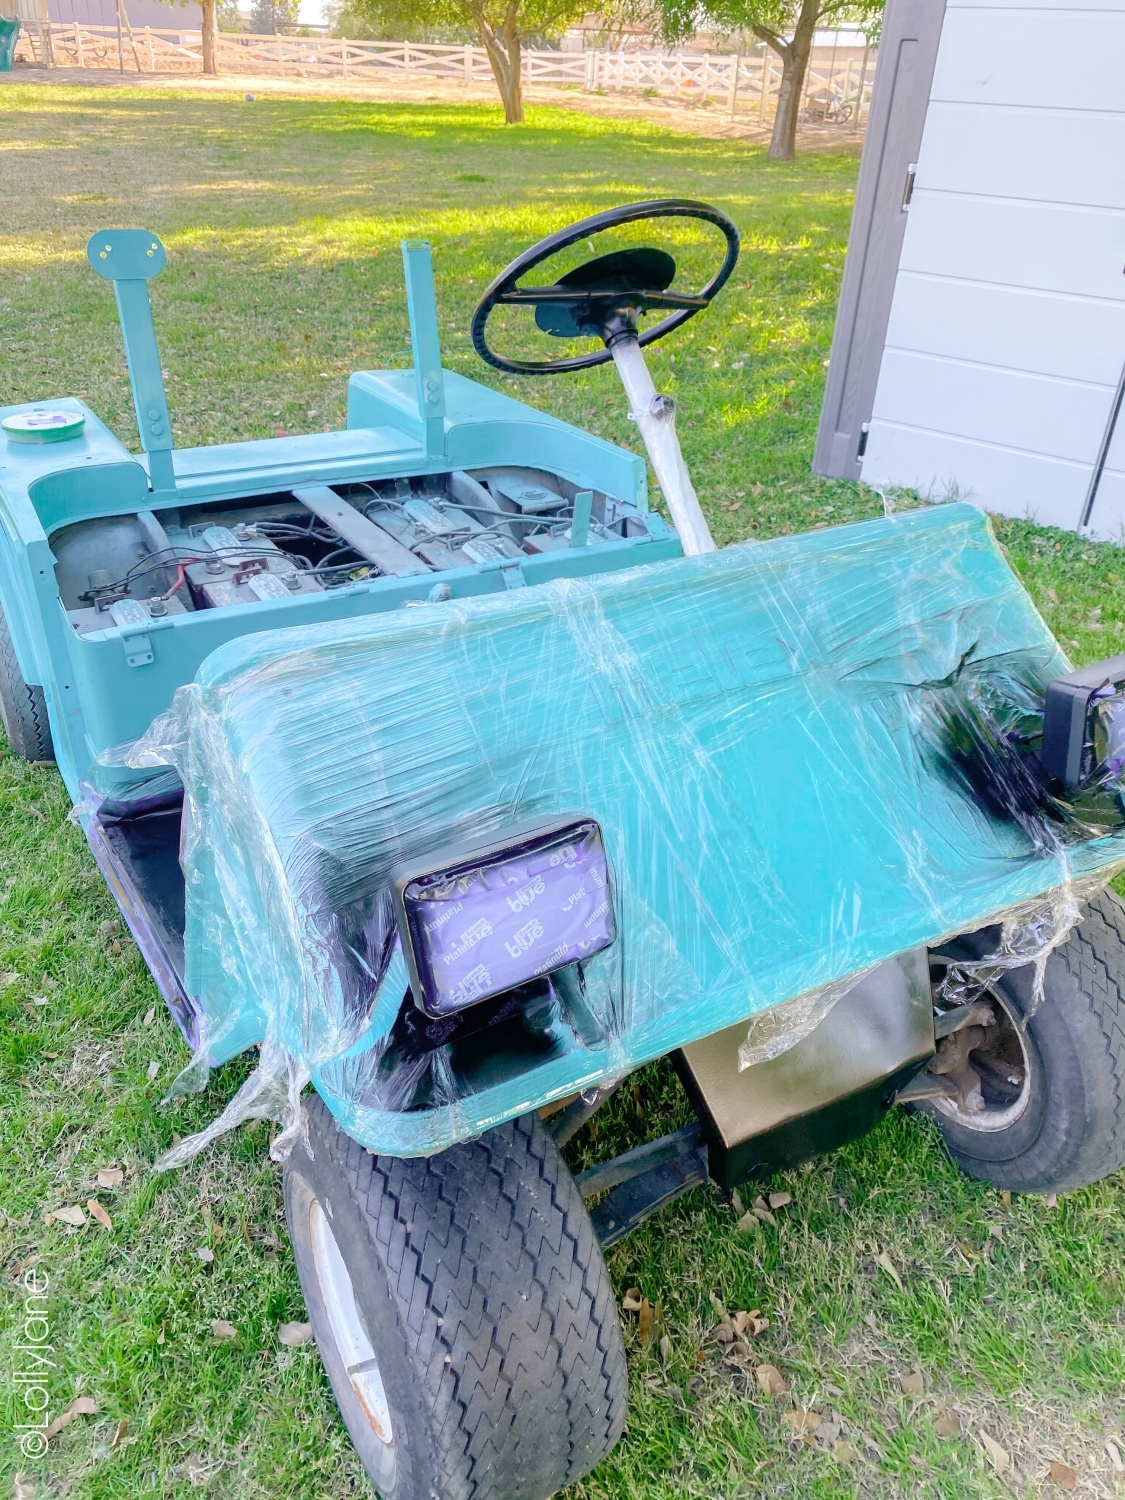 Block off sections of cart to protect from paint